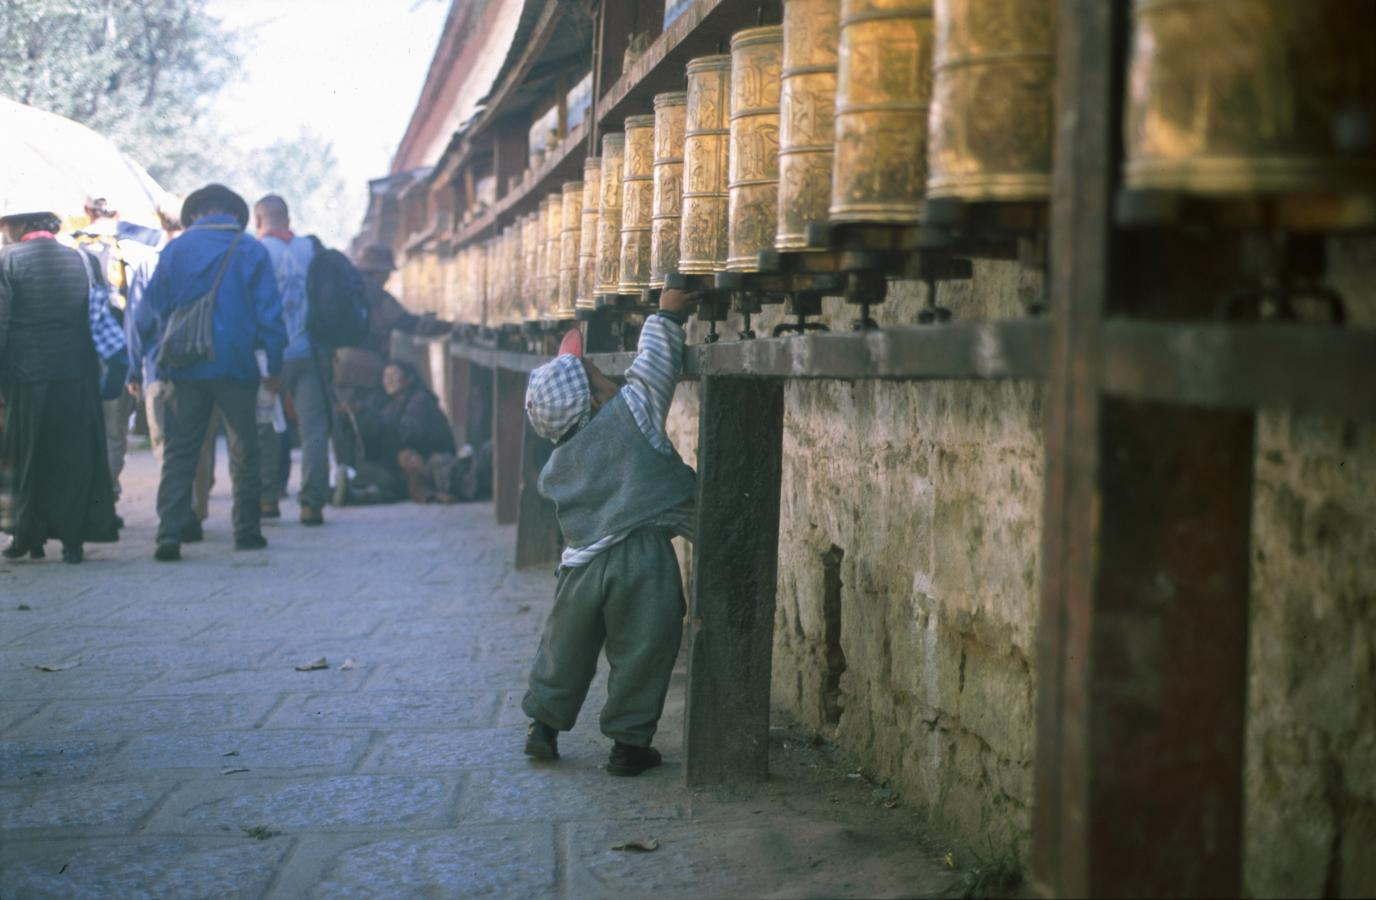 around-the-potala-palace-lhasa-tibet-2000